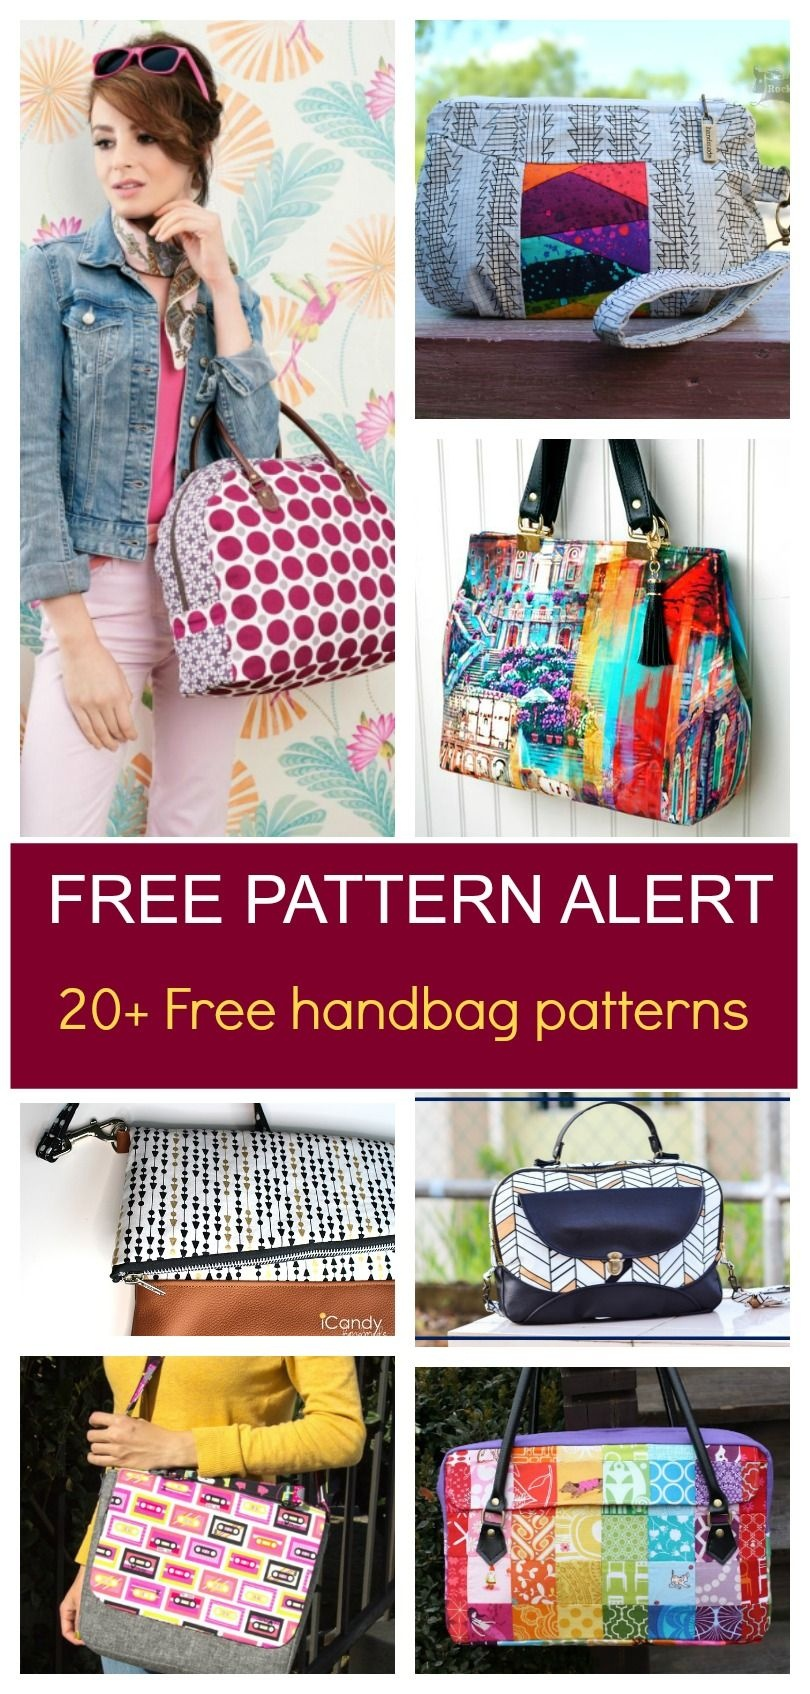 Pdf Sewing Patterns | On The Cutting Floor | Sewing Patterns Free - Handbag Patterns Free Printable